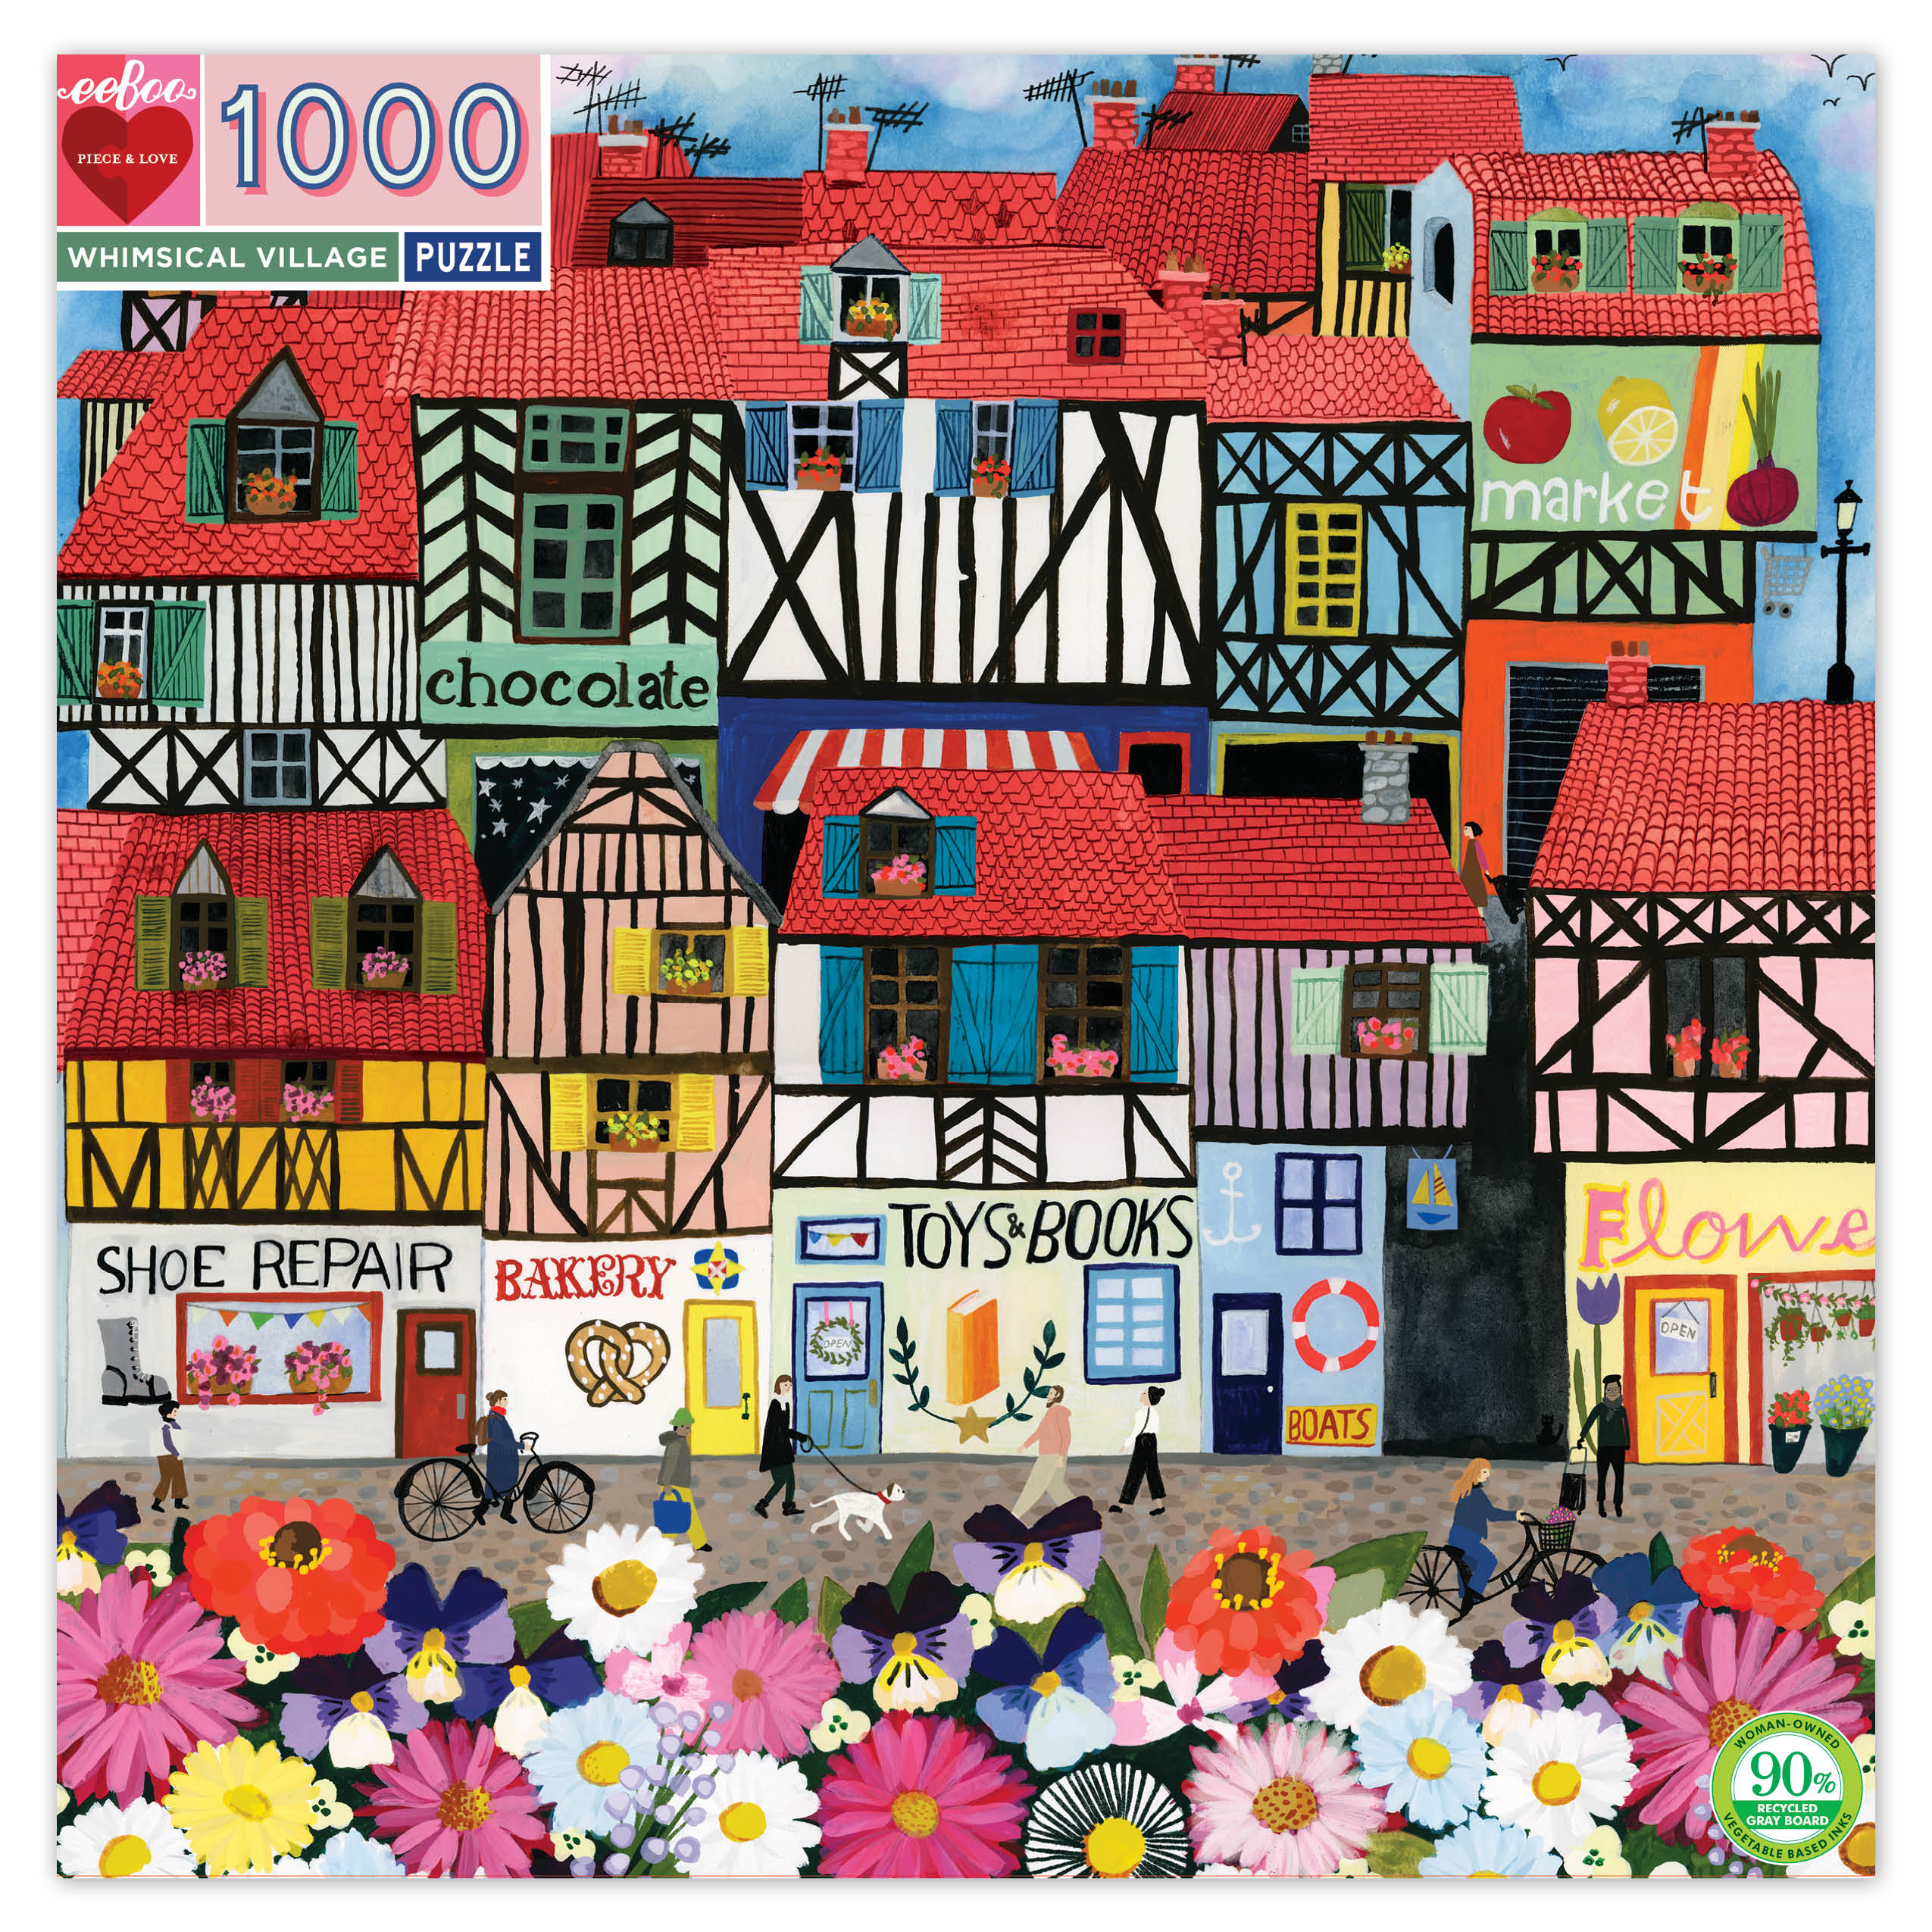 1000 Piece Whimsical Village Jigsaw Puzzle